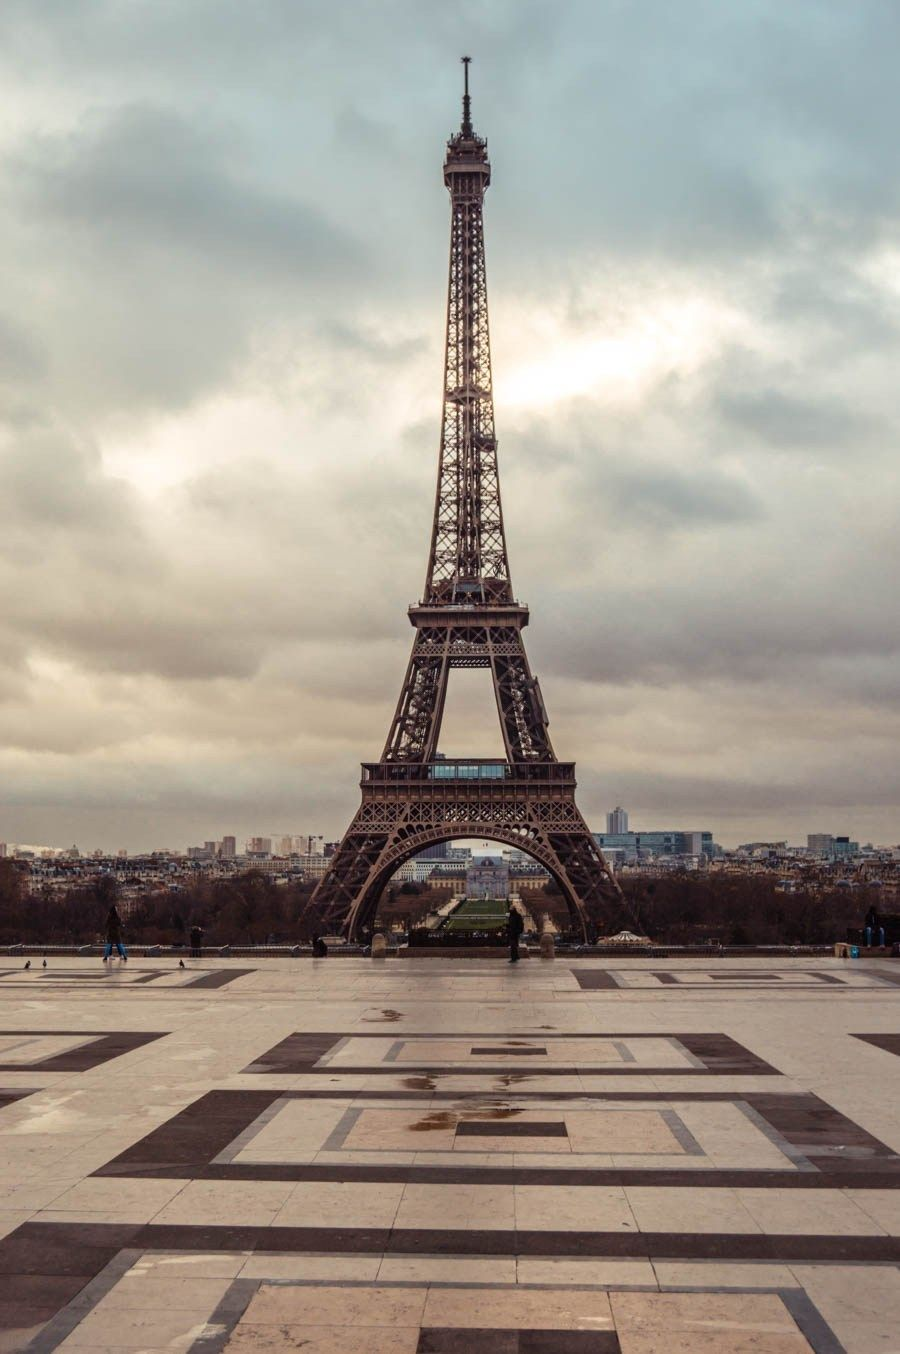 Best Spots to View and Photograph the Eiffel Tower #eiffeltower